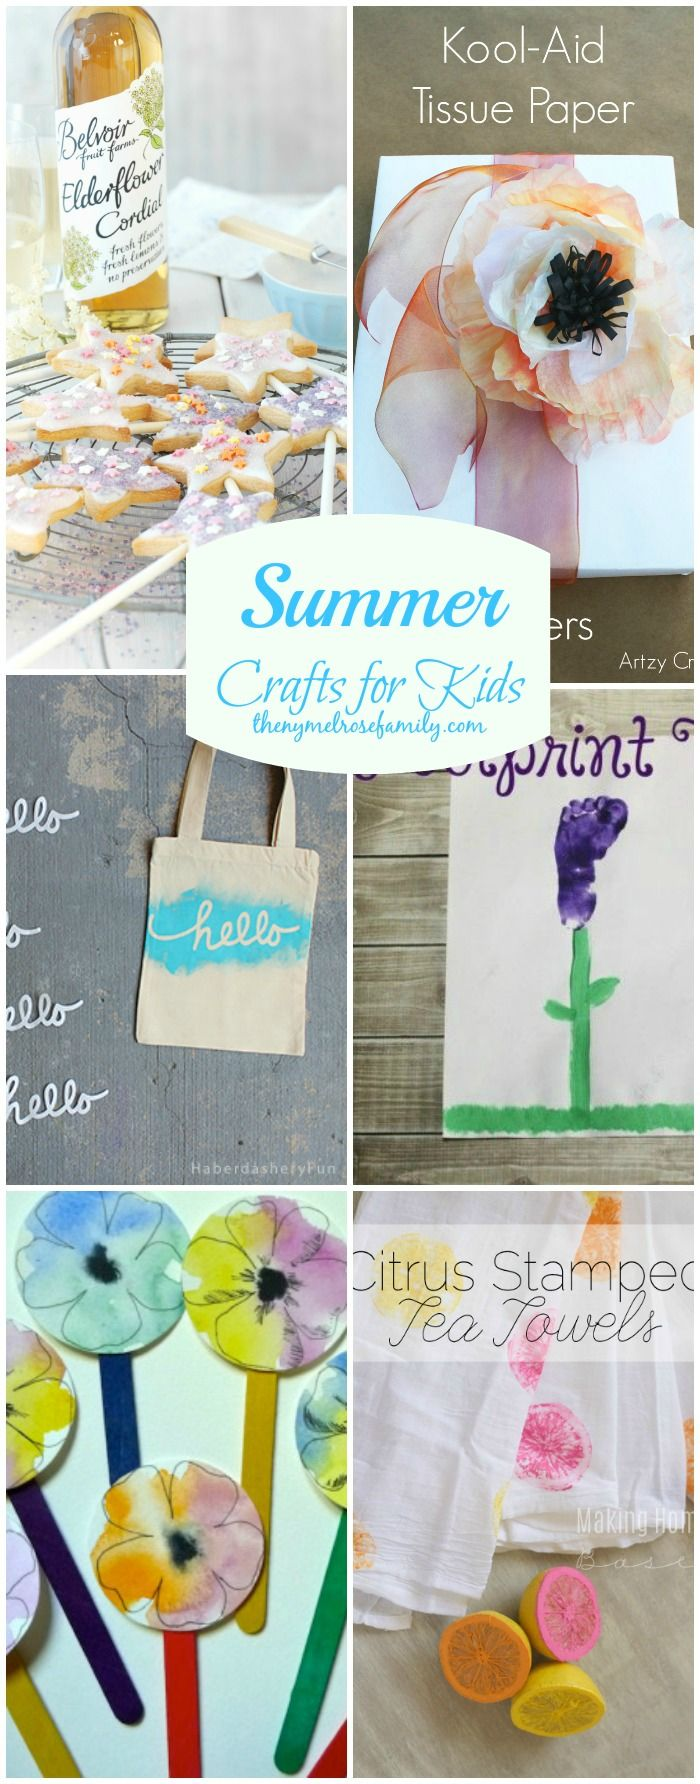 The BEST Summer Crafts for Kids that are sure to be boredom busters!: Kids Summer, Boredom Buster, Melro Families, Summer Crafts For Kids Jpg, Kids Ideas, Crafts Kids, Kids Crafts, Summer Fun, Kids Business